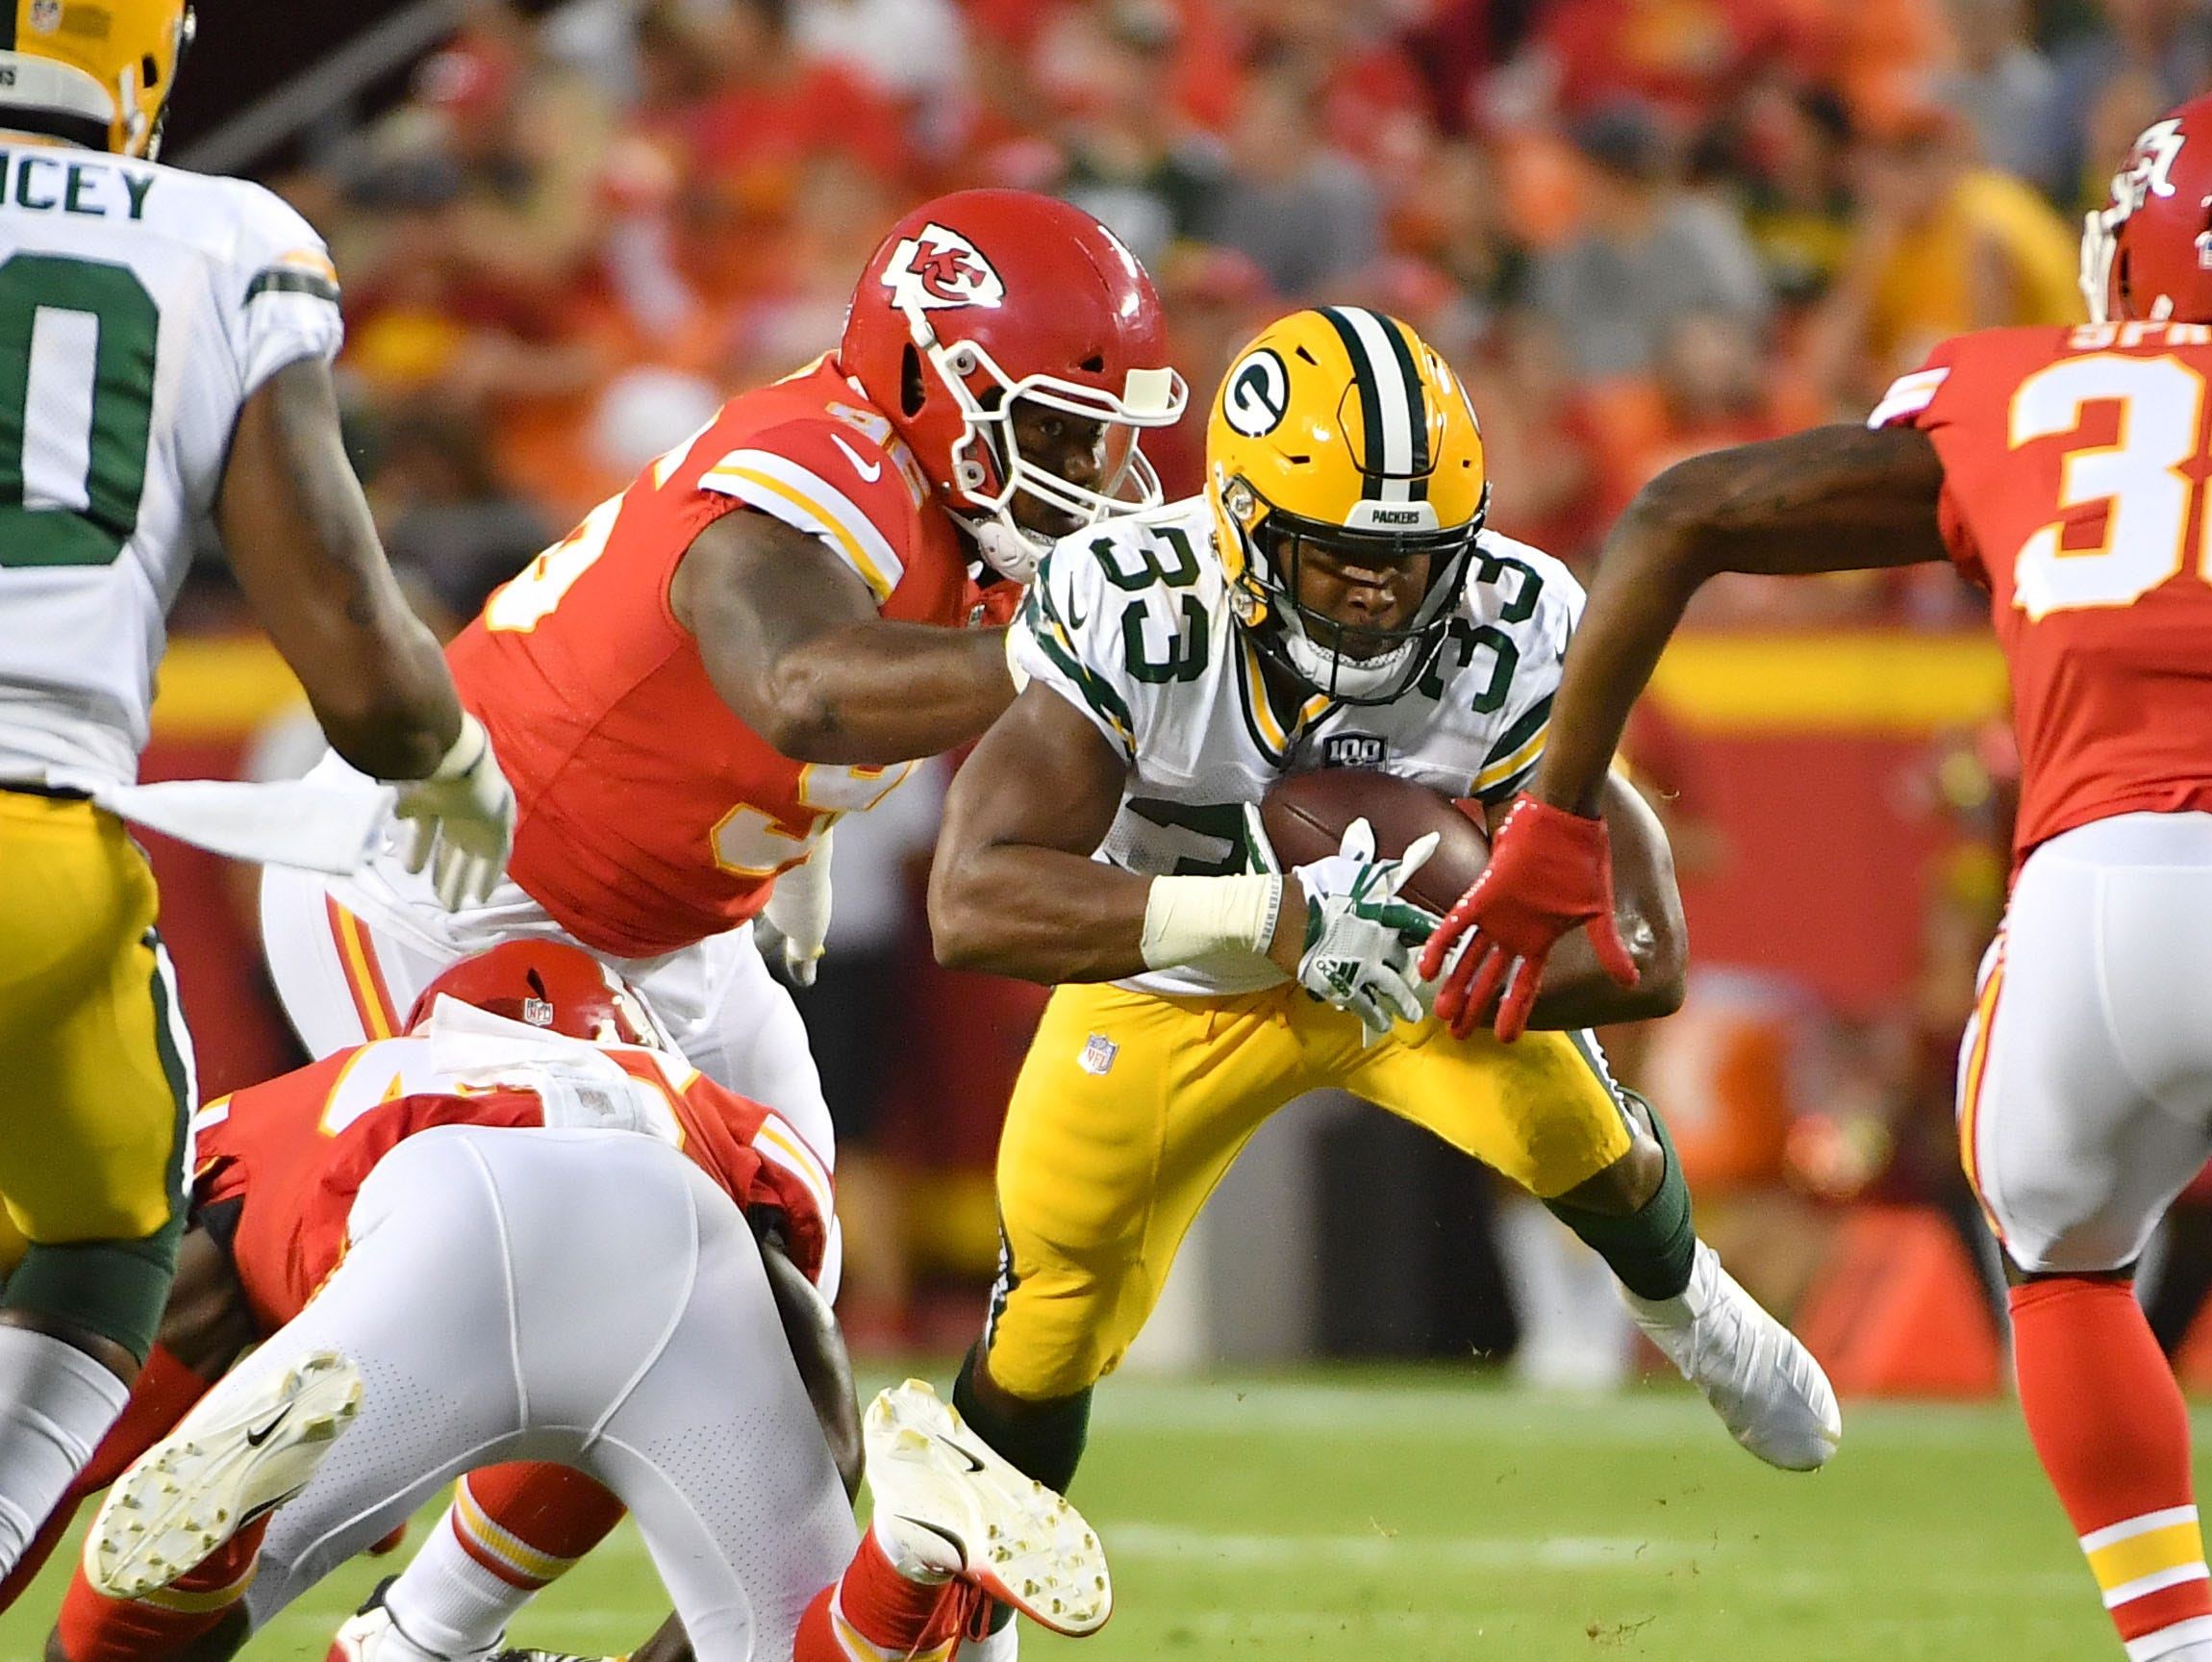 Aug 30, 2018; Kansas City, MO, USA; Green Bay Packers running back Aaron Jones (33) runs the ball and is tackled by Kansas City Chiefs defensive back Leon III McQuay (34) during the first half at Arrowhead Stadium.